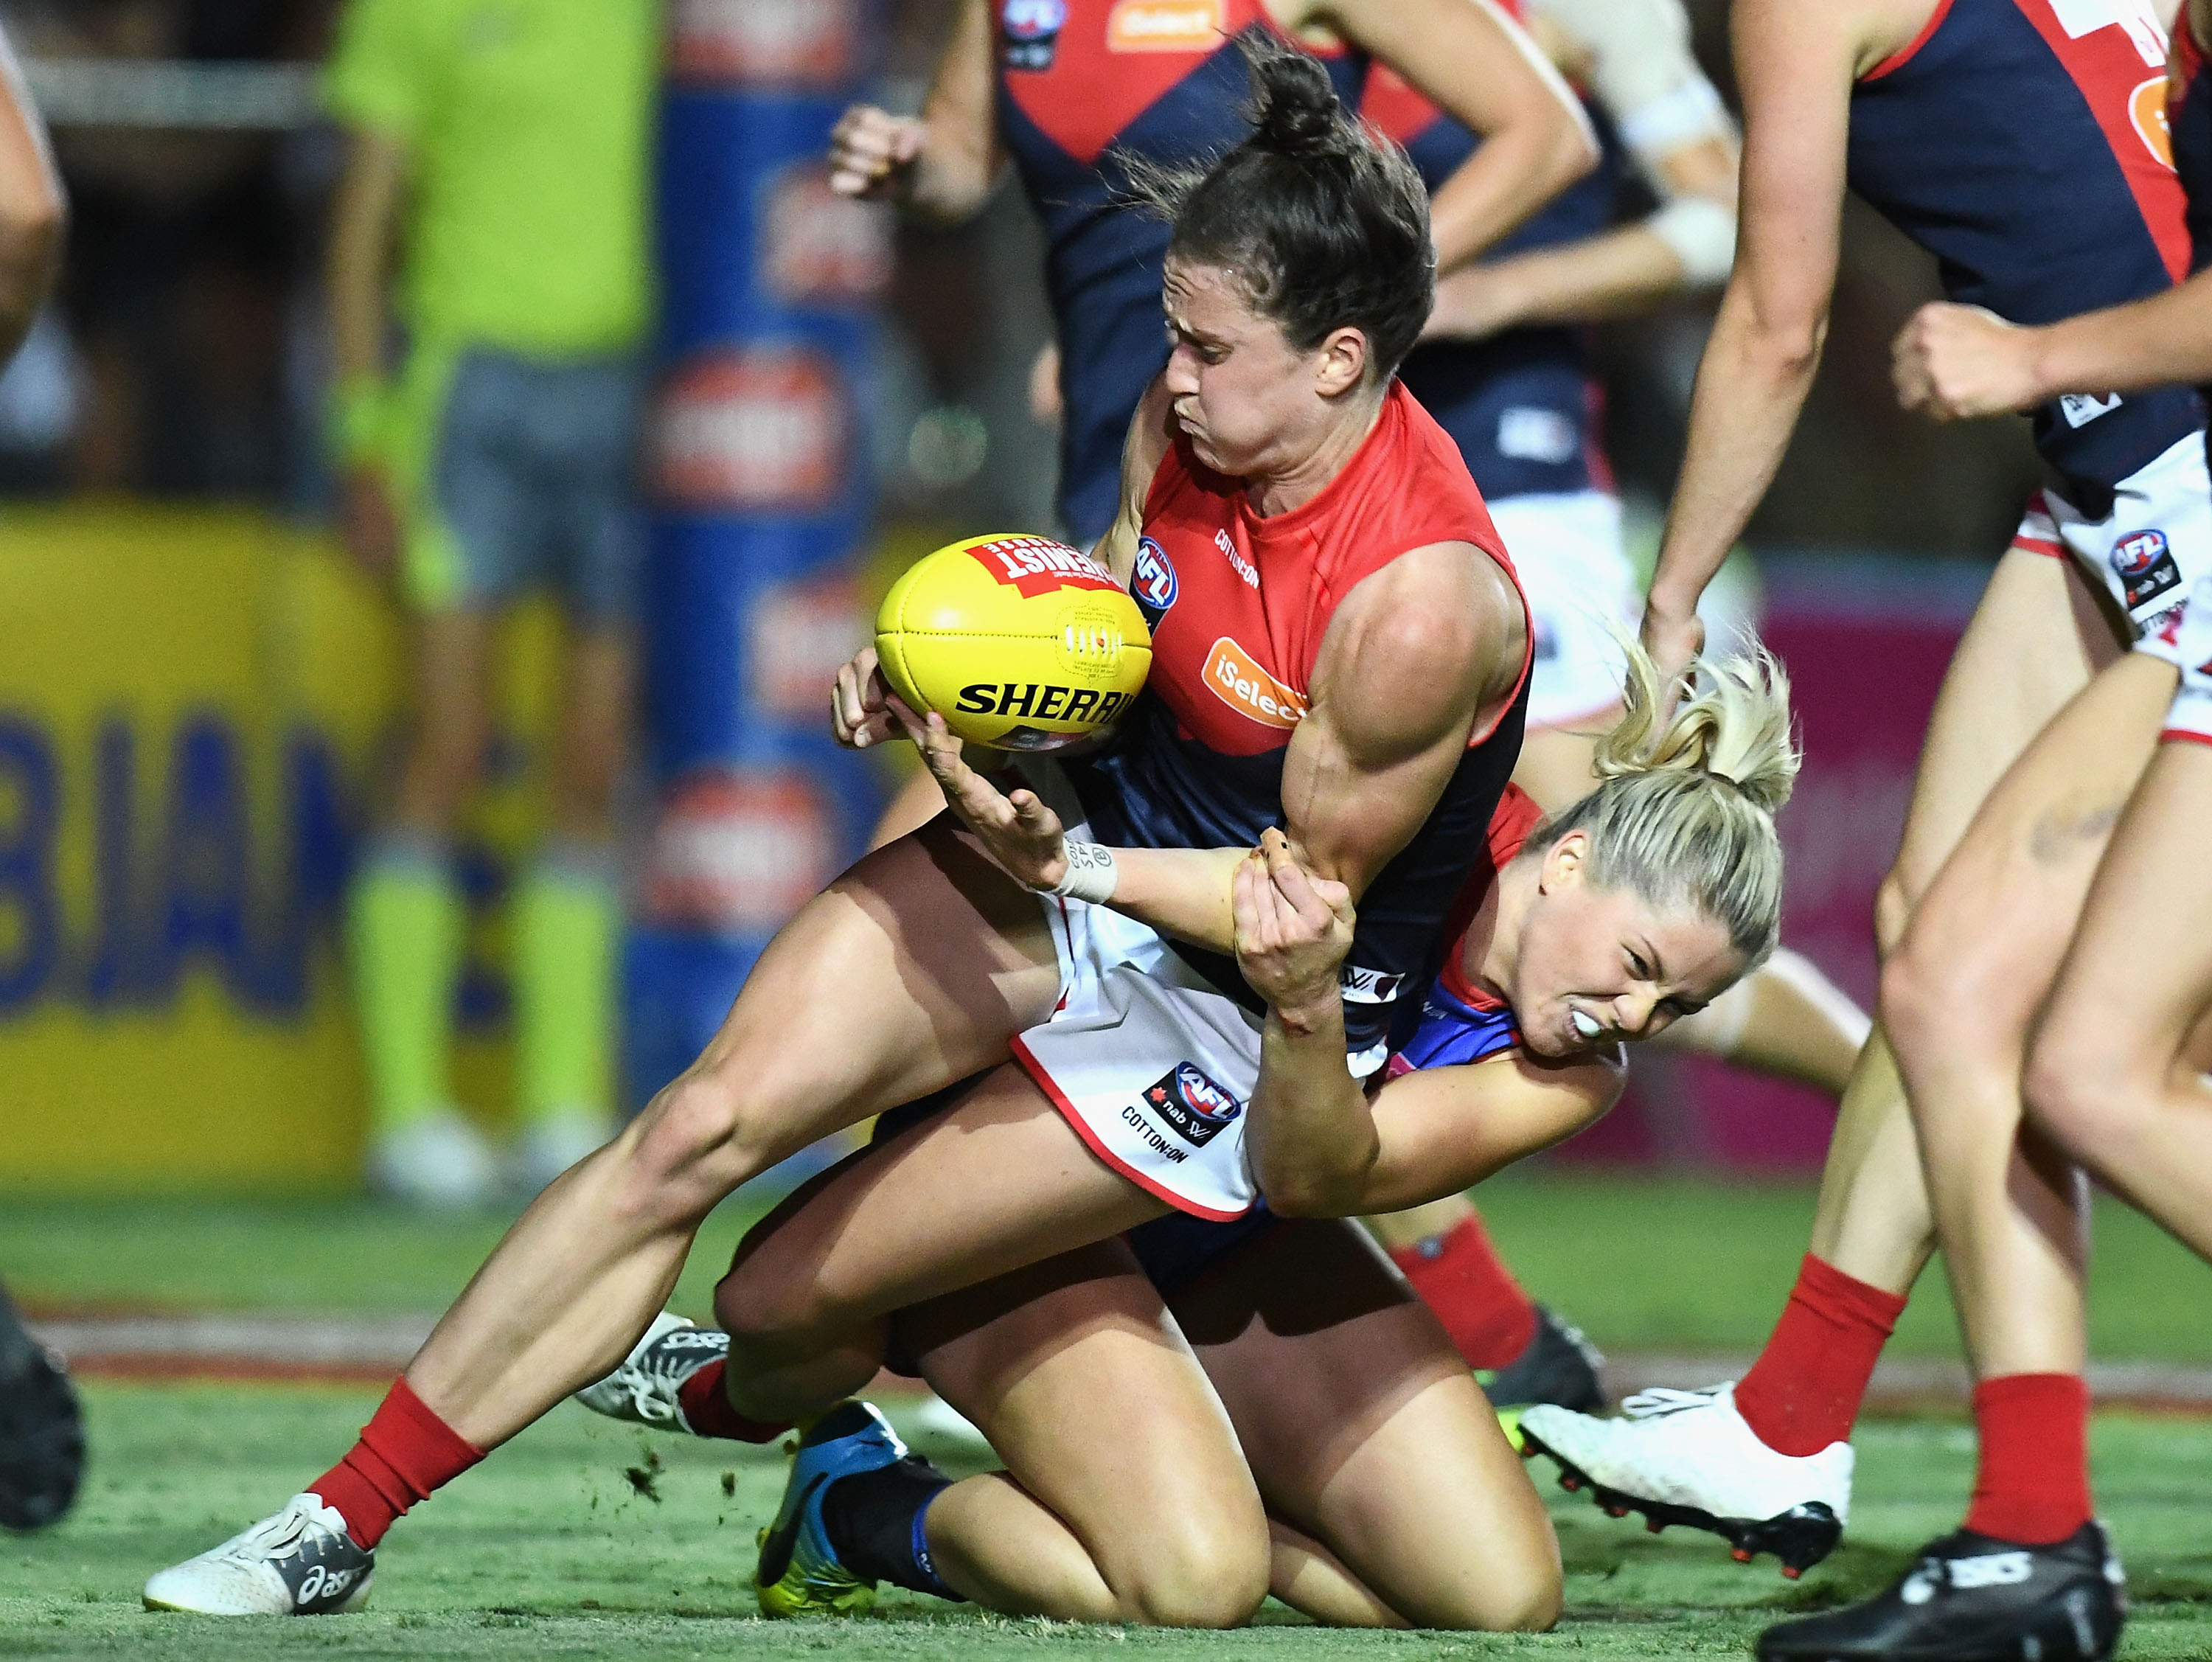 AFLW Player Accuses League Of Sex Discrimination Over Suspension – Discrimination Claims